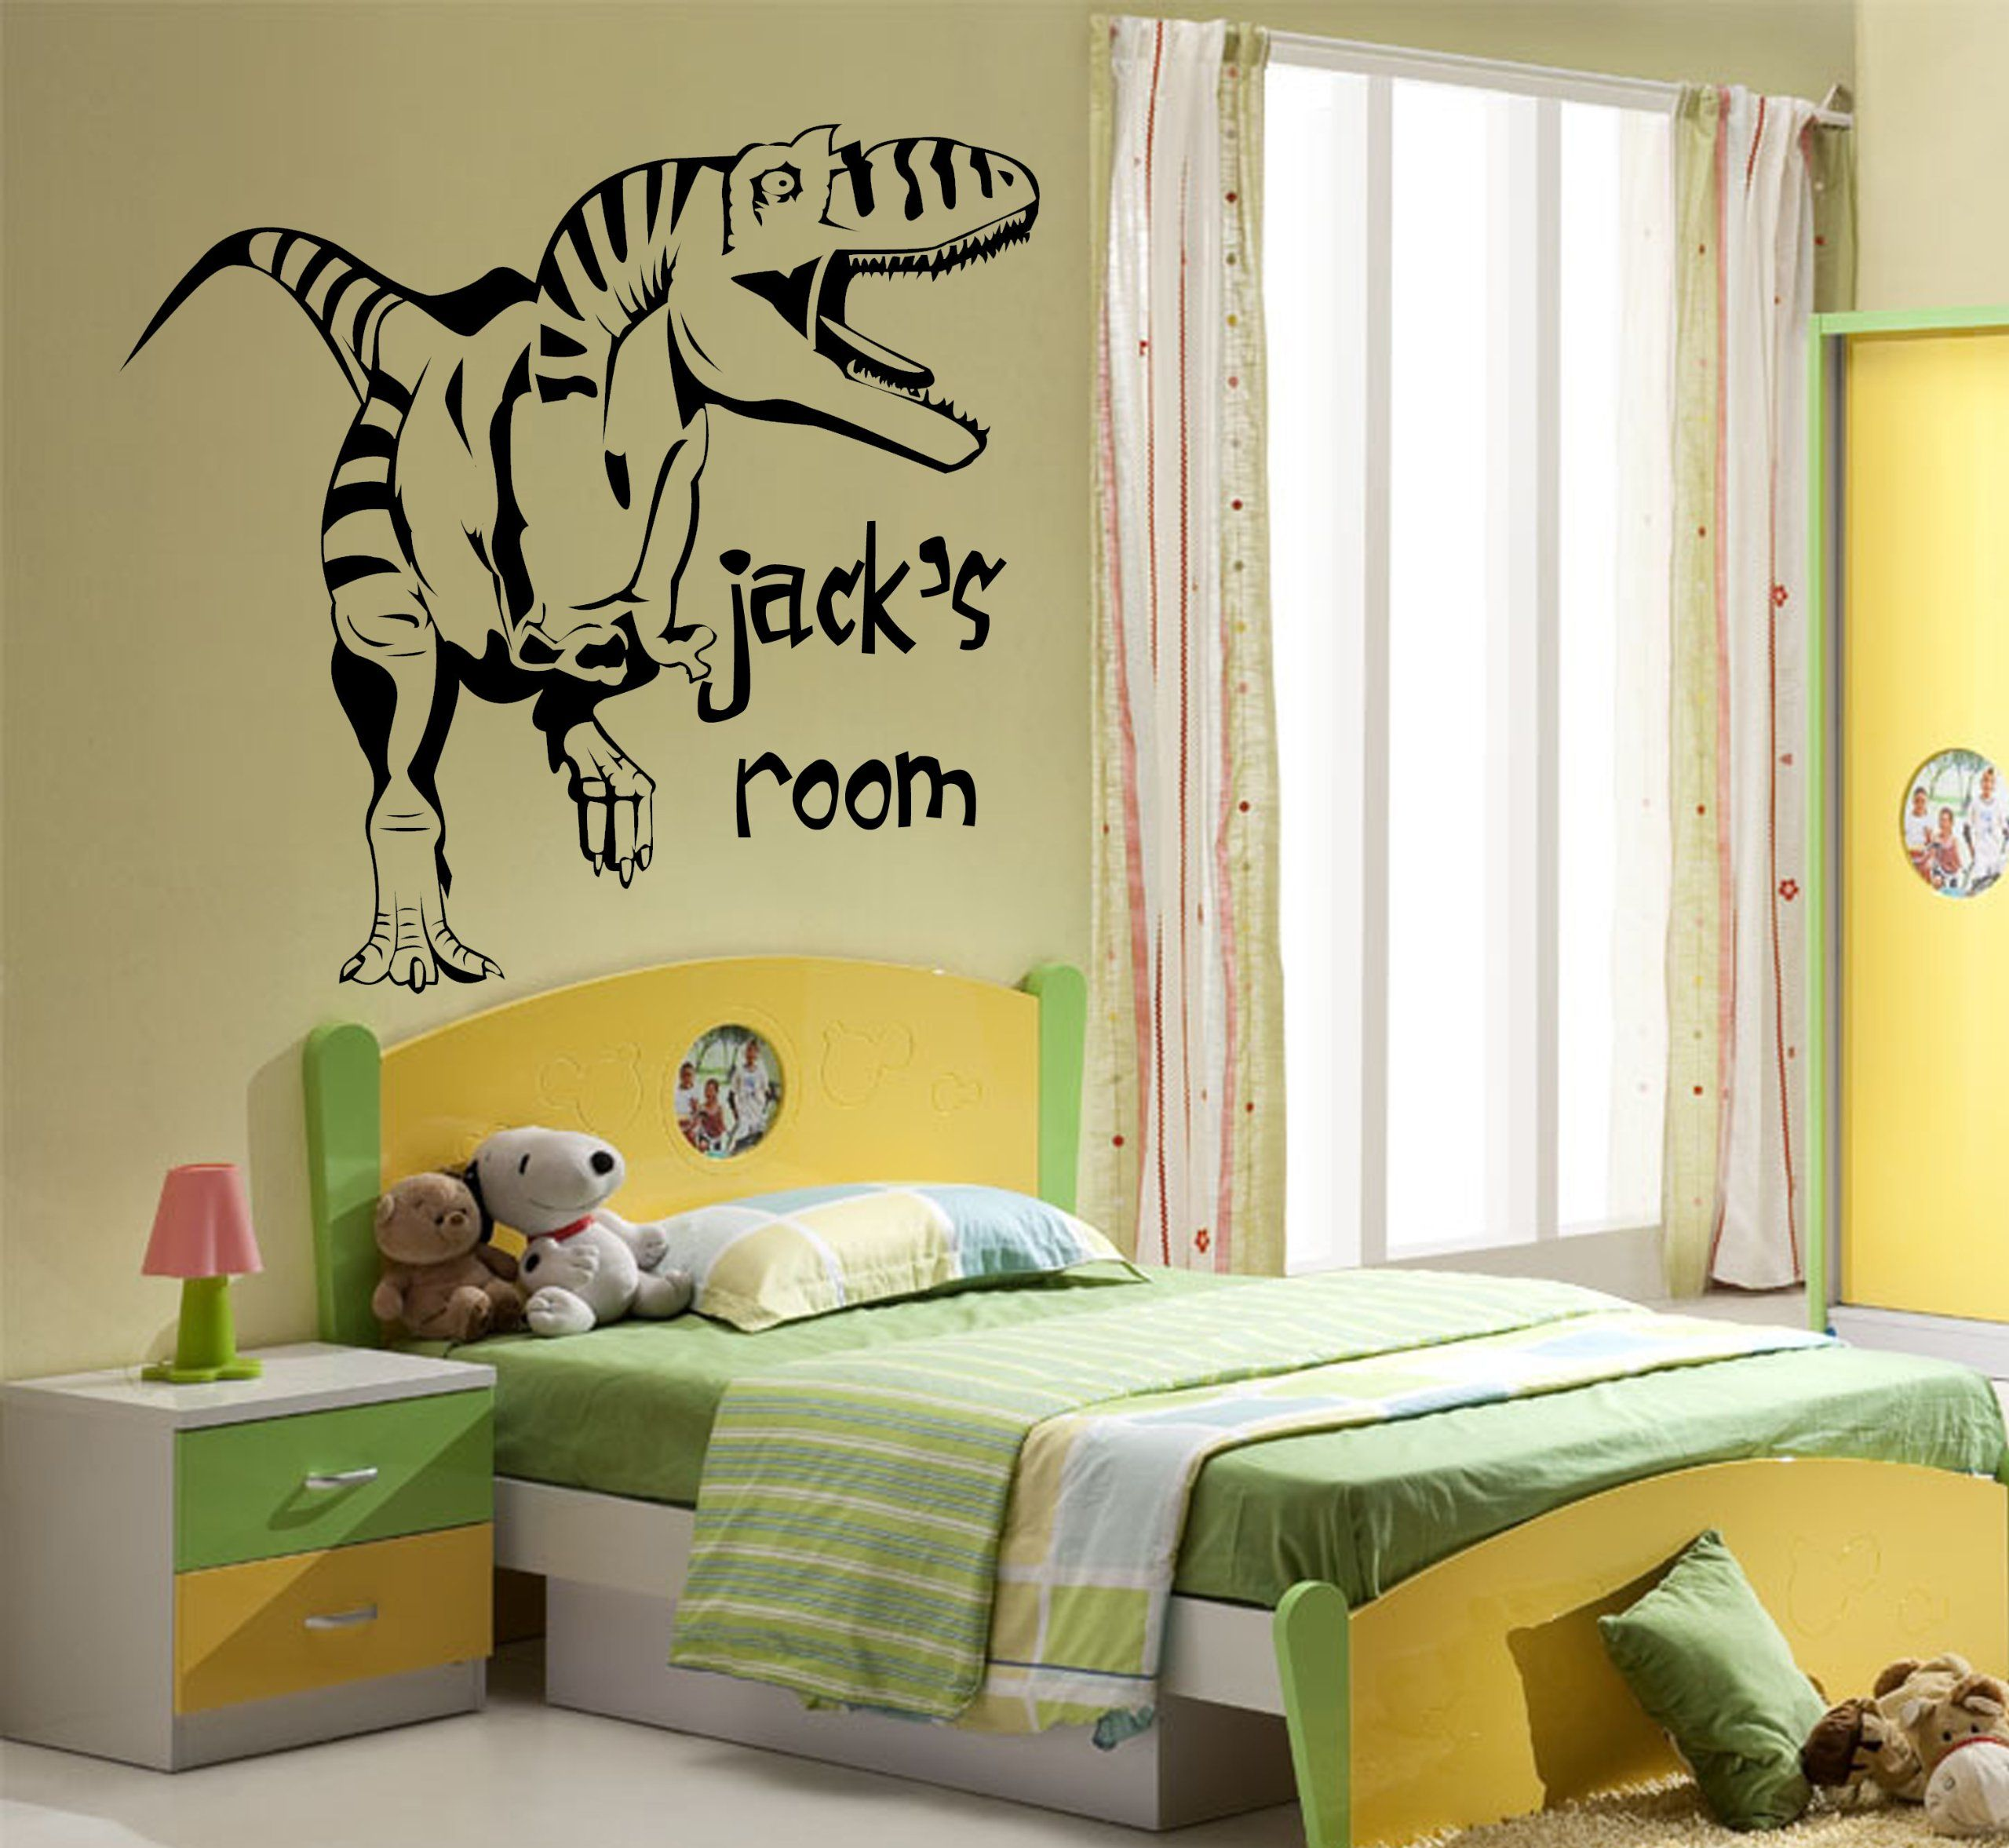 Wonderful Dinosaur Vinyl Wall Art Pictures Inspiration - The Wall ...